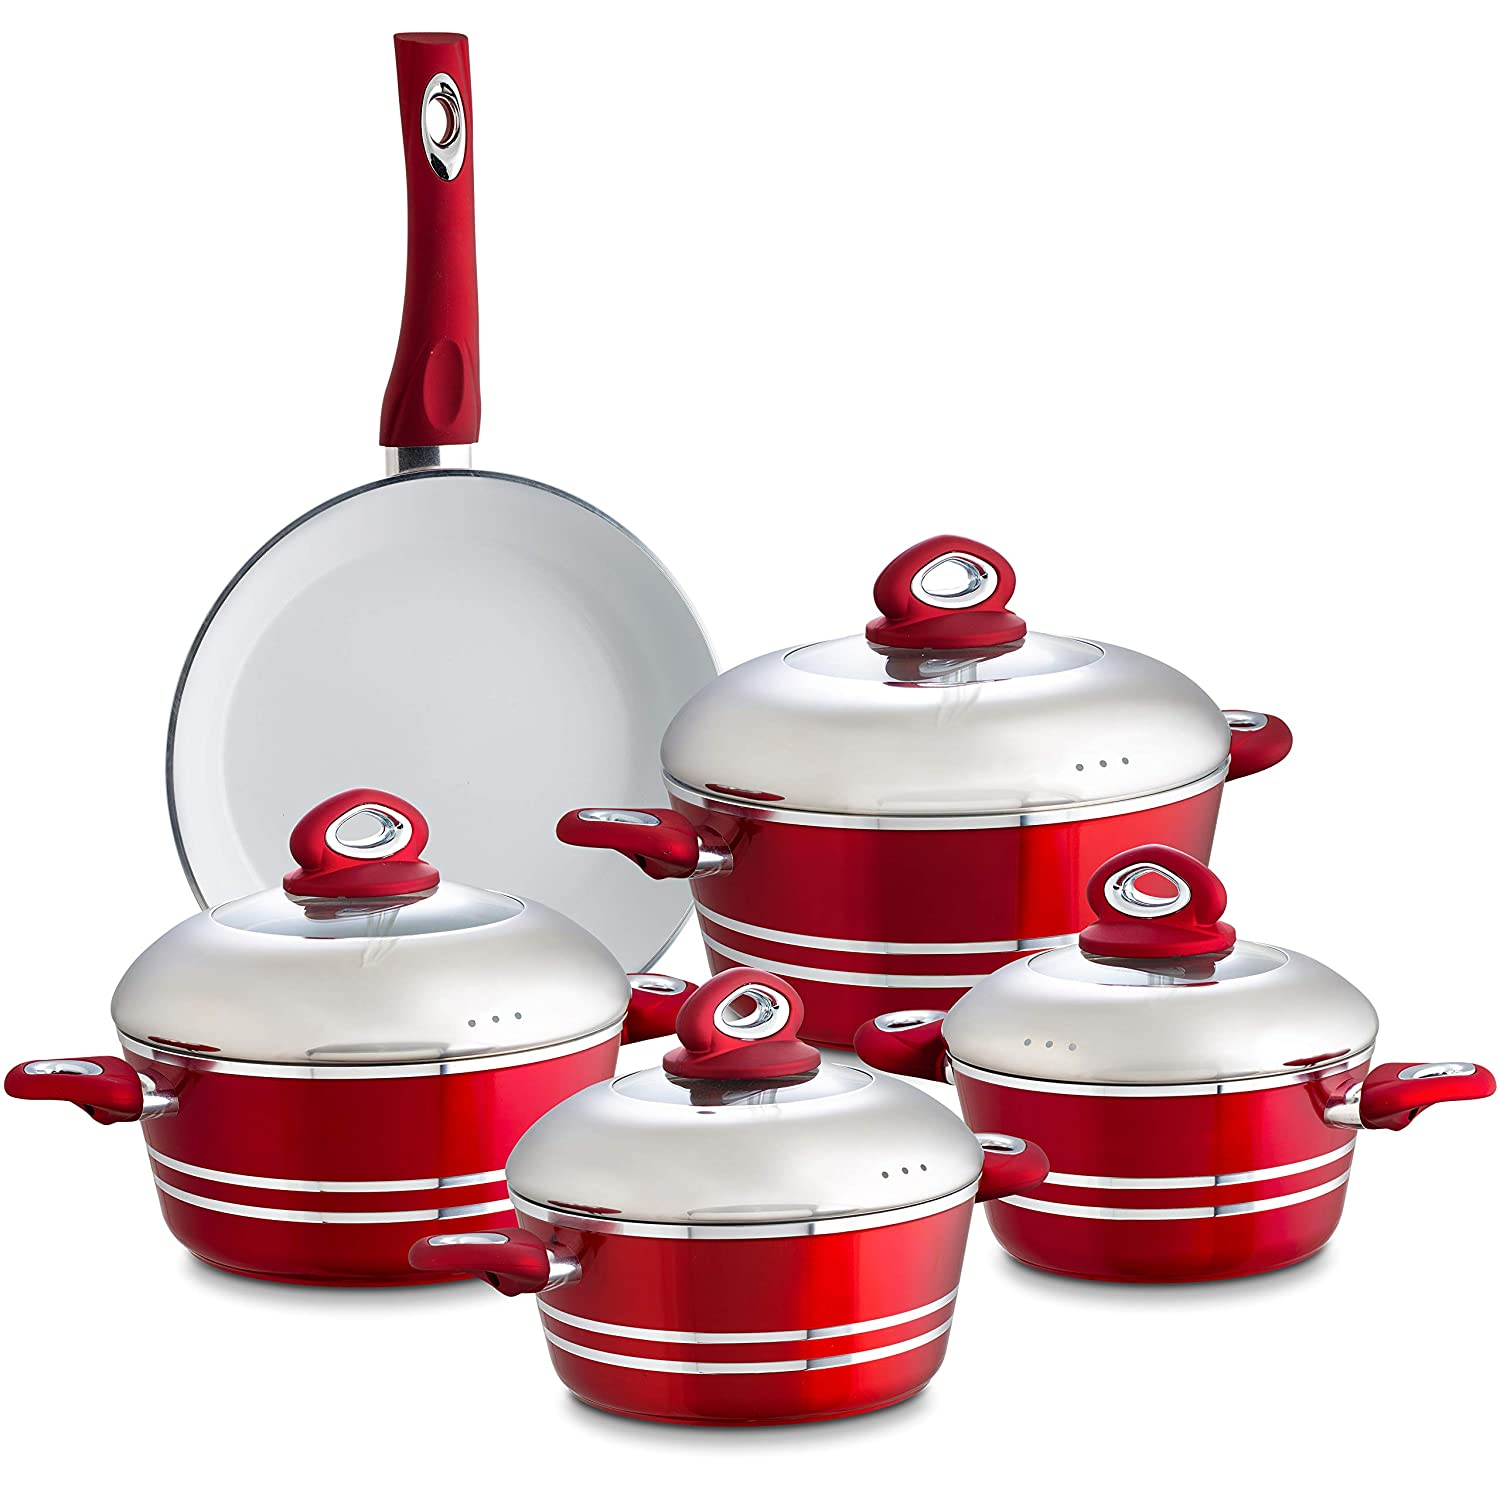 Chef's Star 9 Piece Professional Grade Aluminum Non-stick Pots & Pans Set - Induction Ready Cookware Set